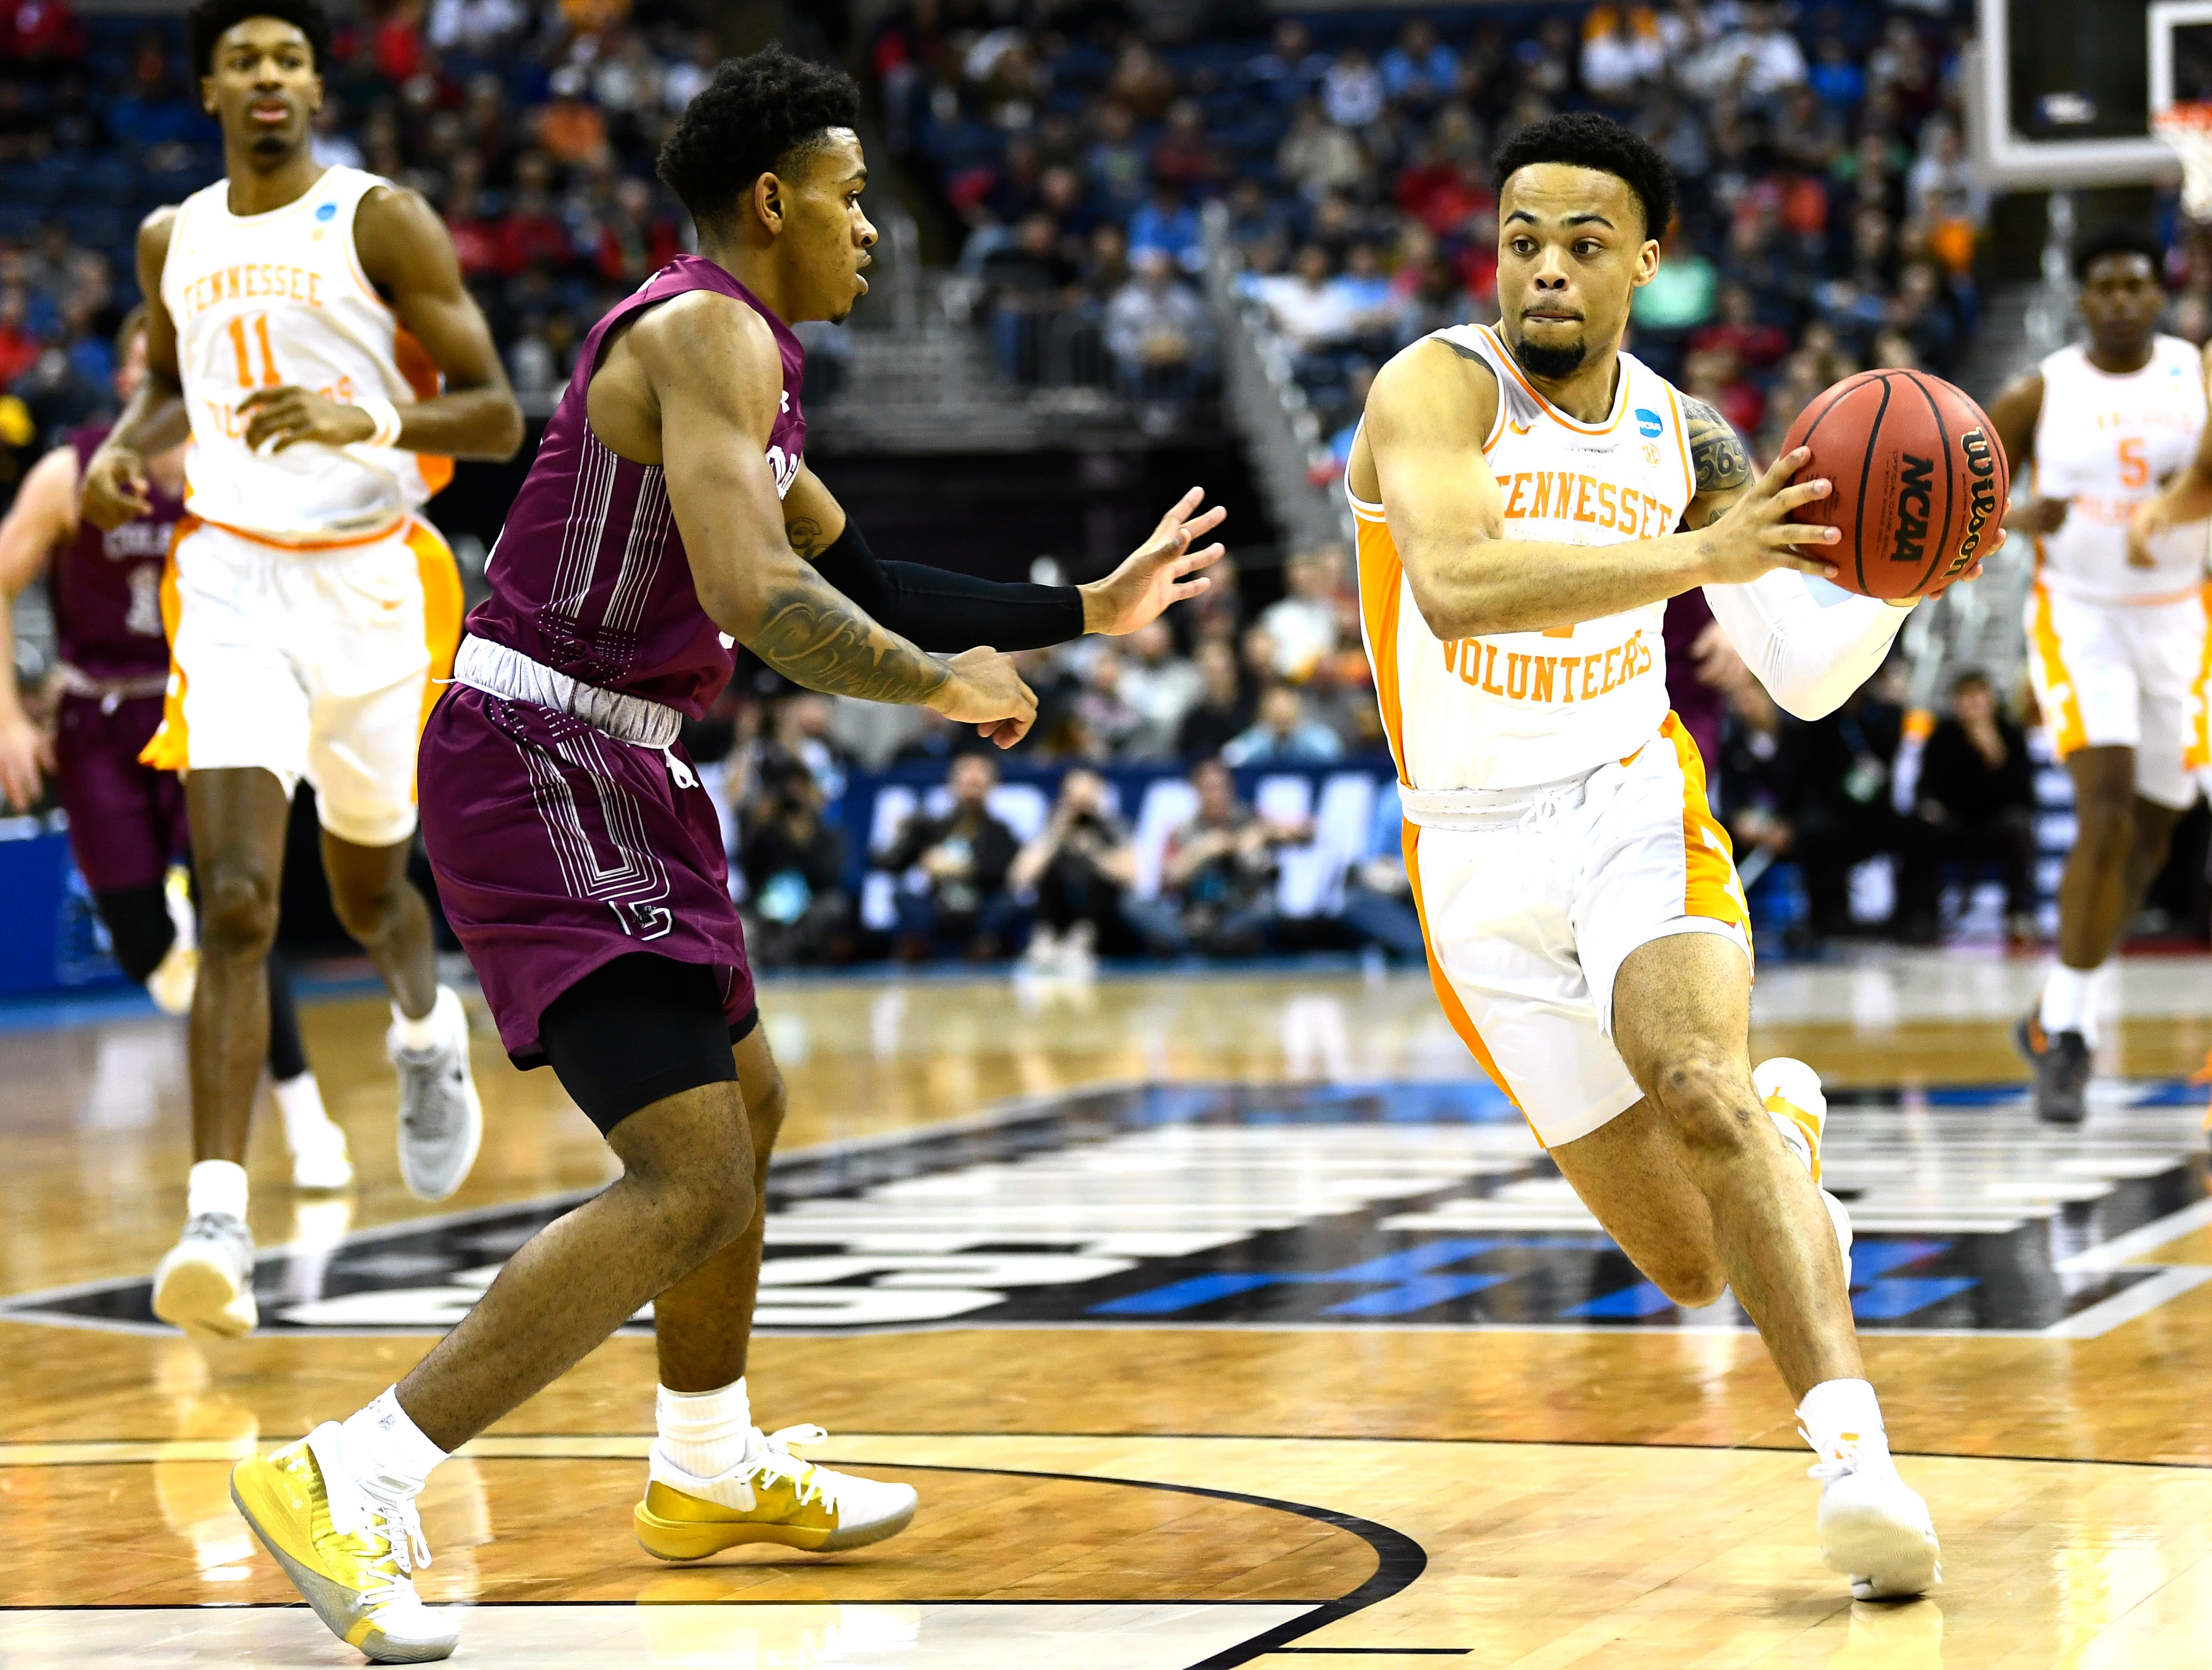 Tennessee guard Lamonte Turner (1) drives to the basket during the game against the Colgate Raiders in the first round of the NCAA Tournament at Nationwide Arena in Columbus, Ohio, on Friday, March 22, 2019.